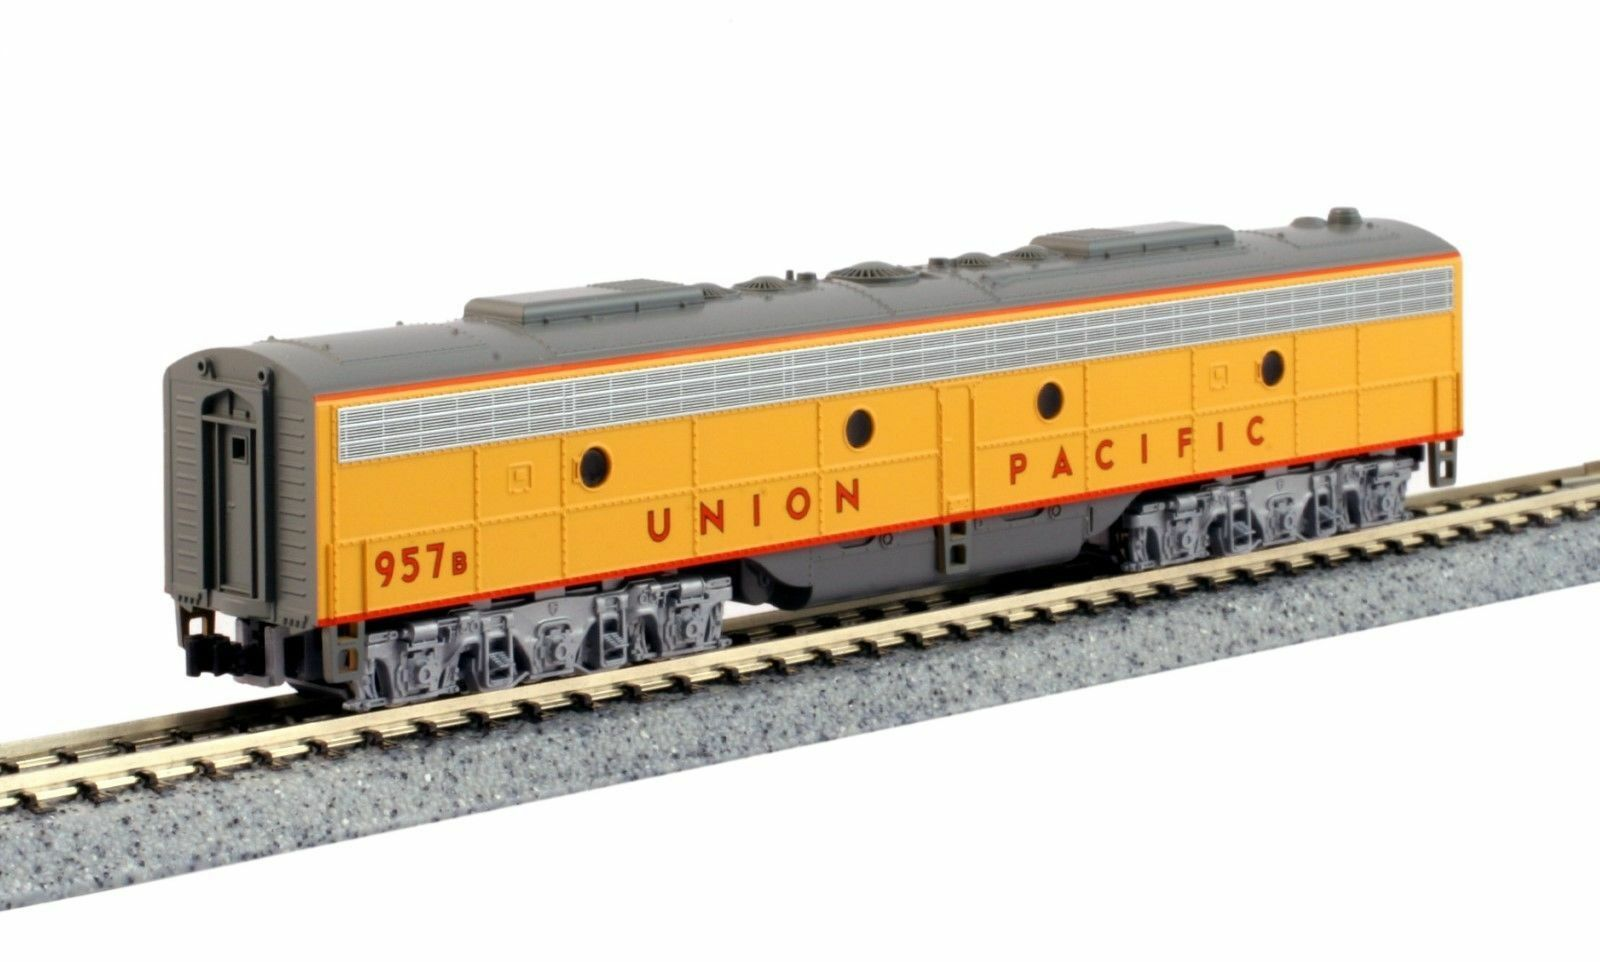 KATO 1765354DCC E9B E9 N Locomotive Union Pacific UP 957B w DCC 176-5354-DCC